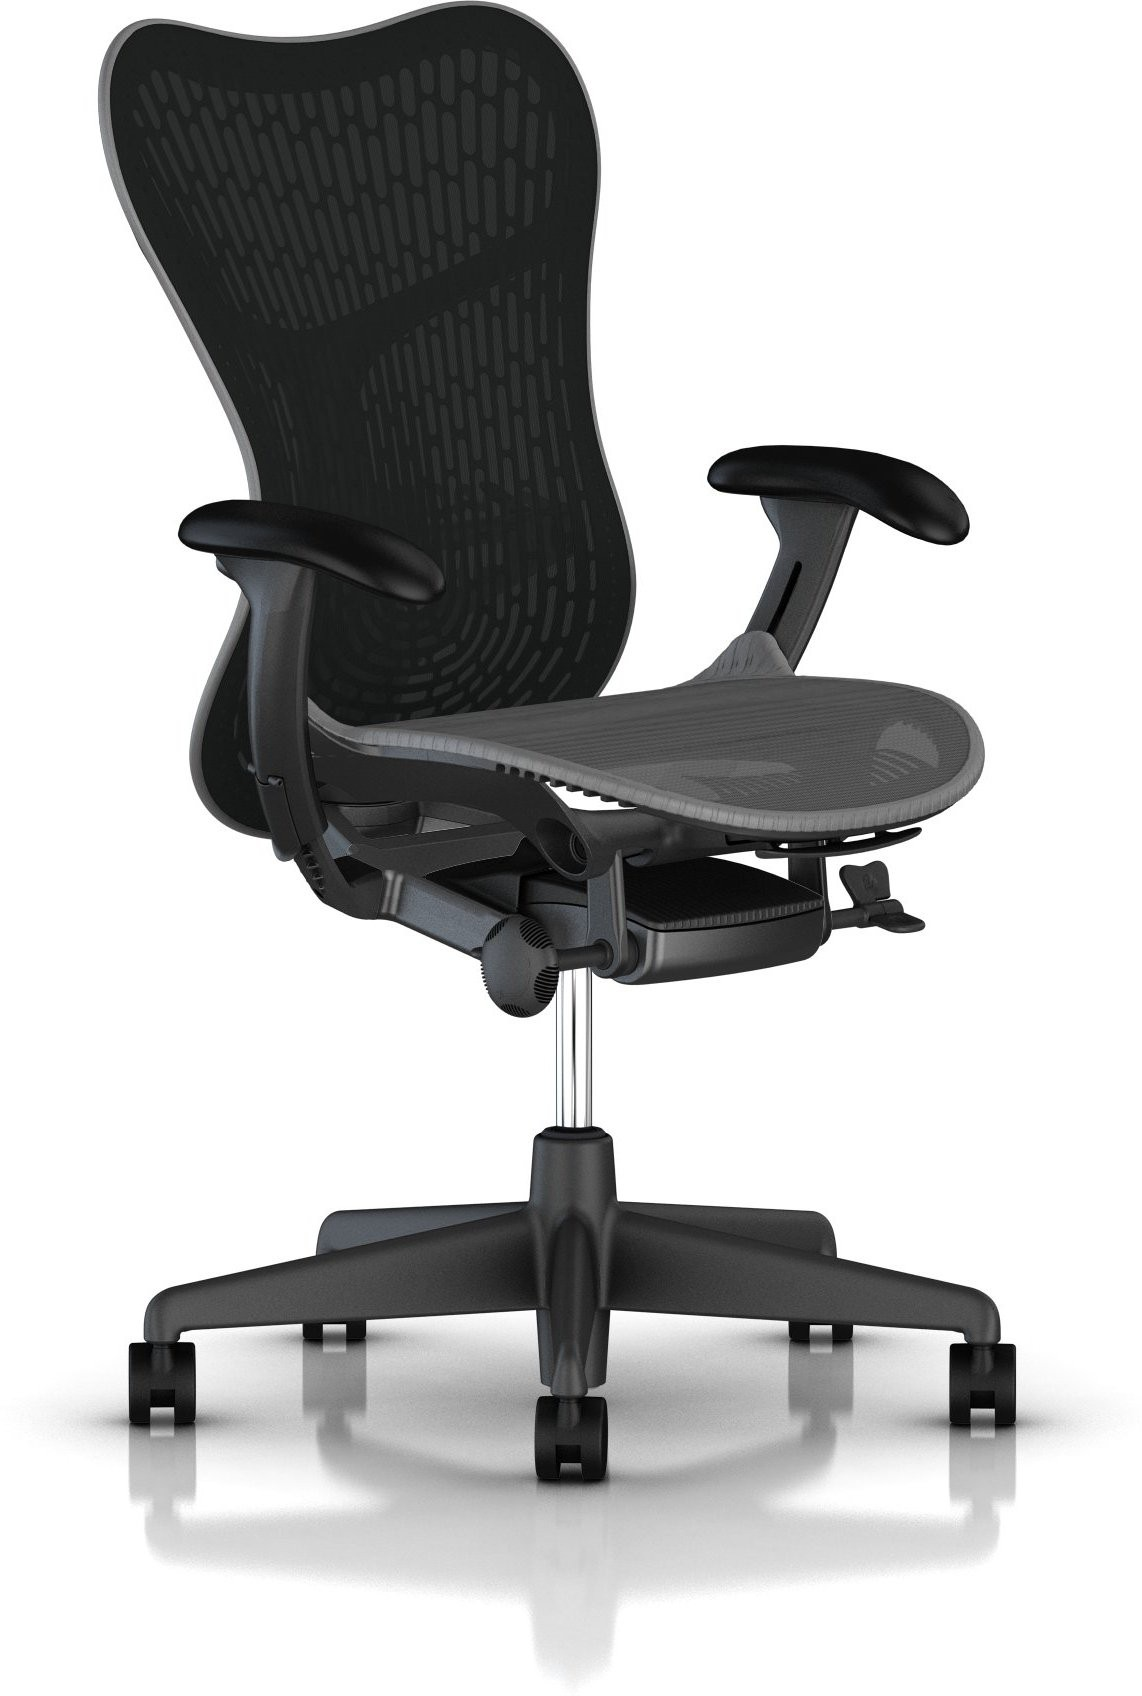 View HermanMiller Mirra 2 - Slate Grey Butterfly suspension back : Slate Grey Seat : Triflex Polymer NA Office Chair(Black) Furniture (HermanMiller)